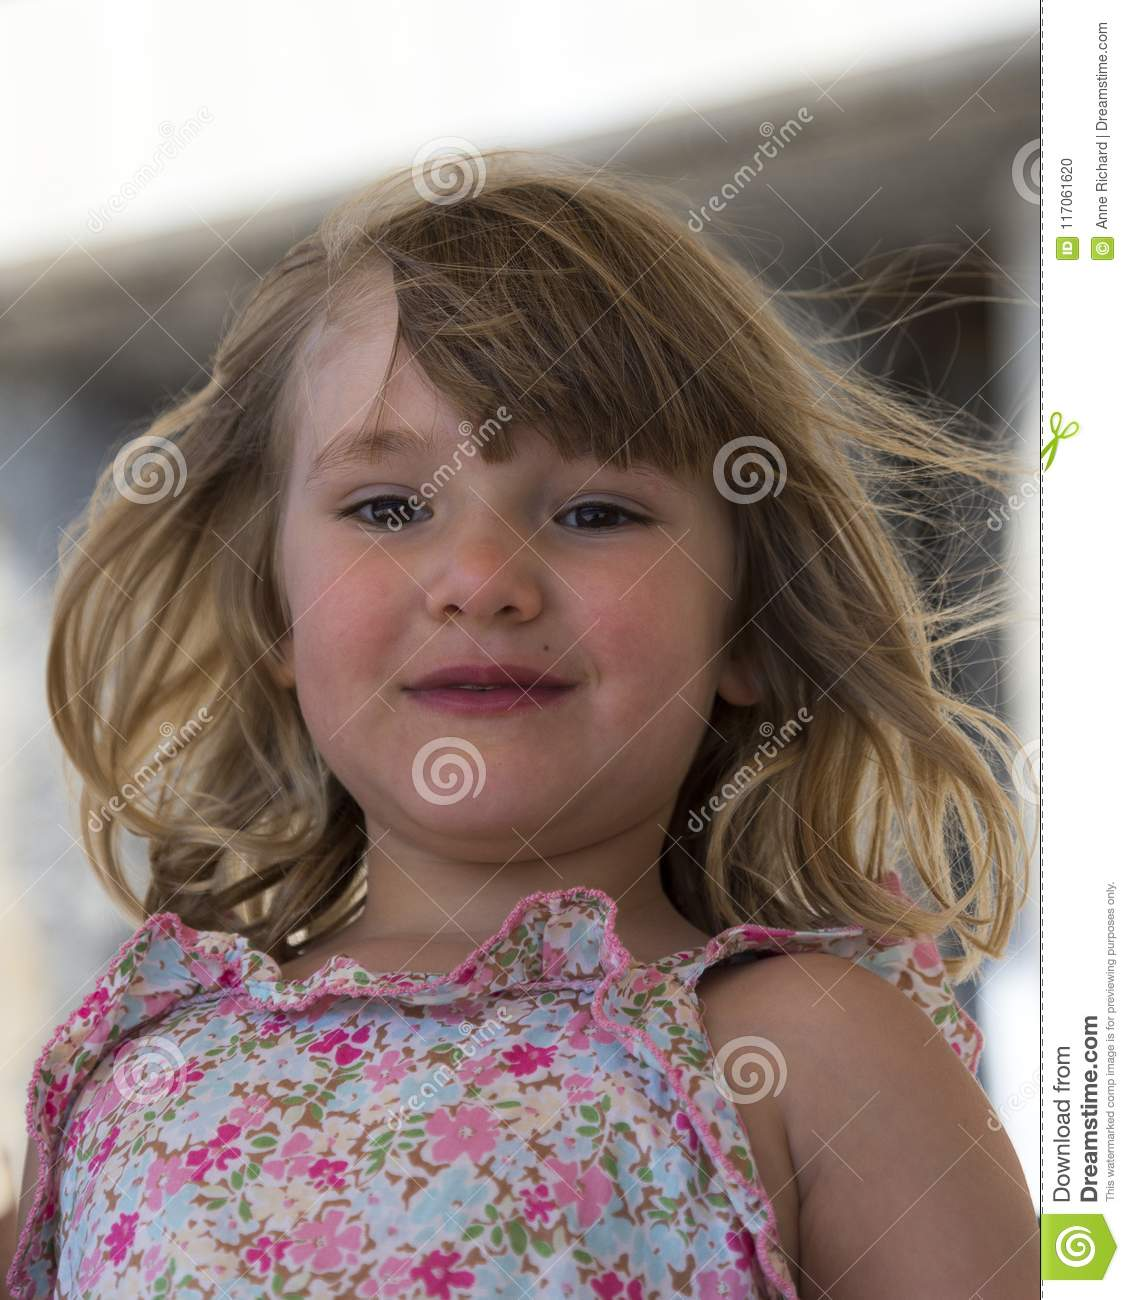 Round Faced Adorable Little Girl With Very Wind Blown Dirty Blonde